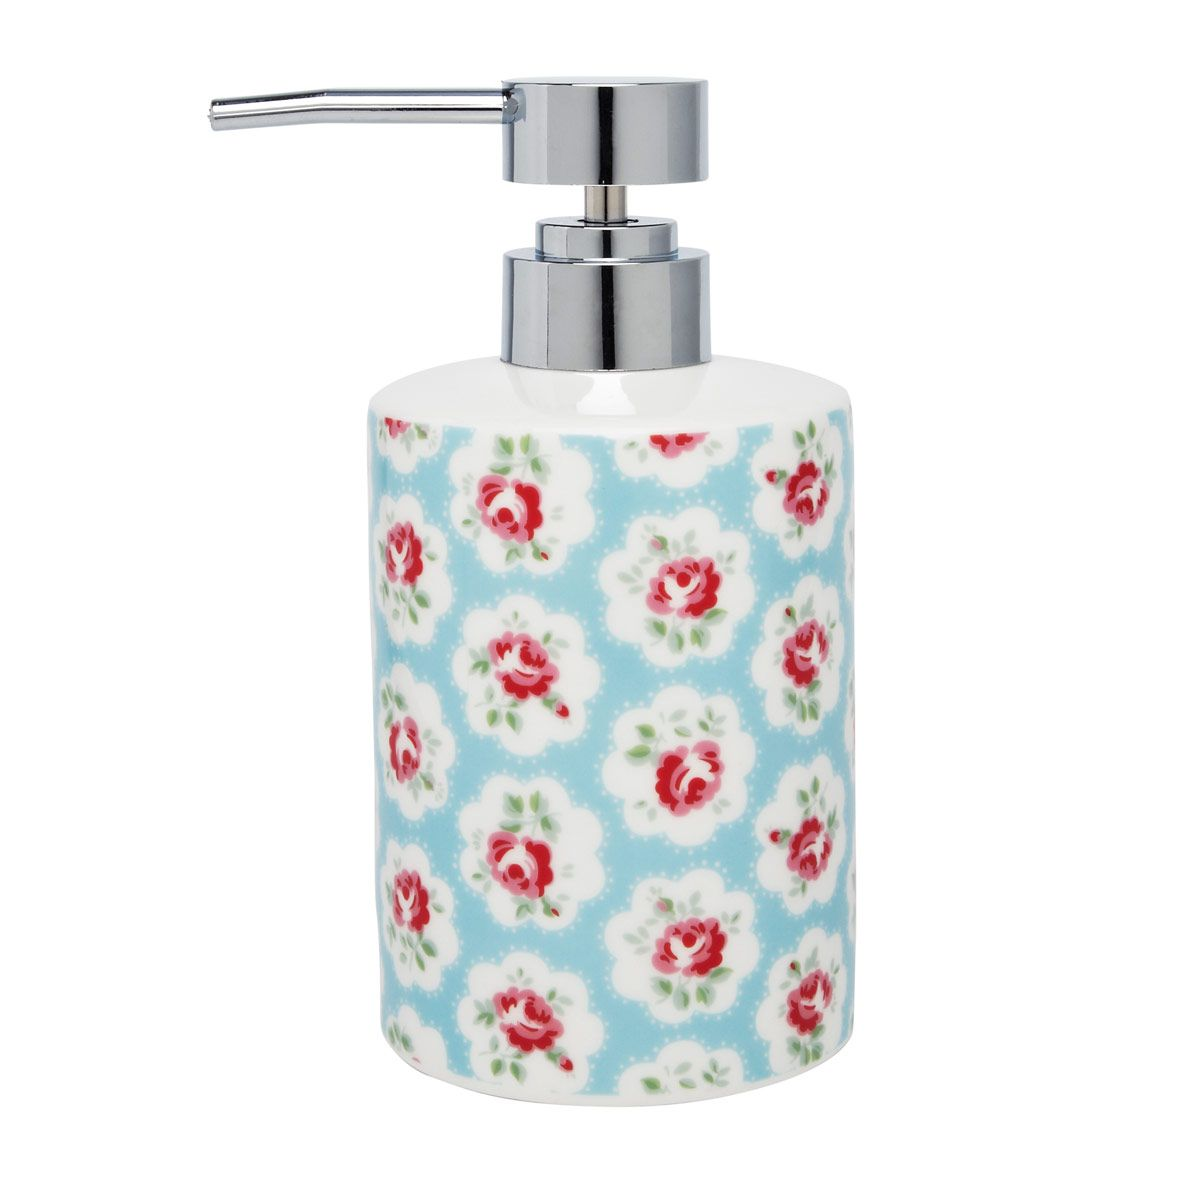 Provence Rose Ceramic Soap Dispenser | Bathroom | CathKidston ...